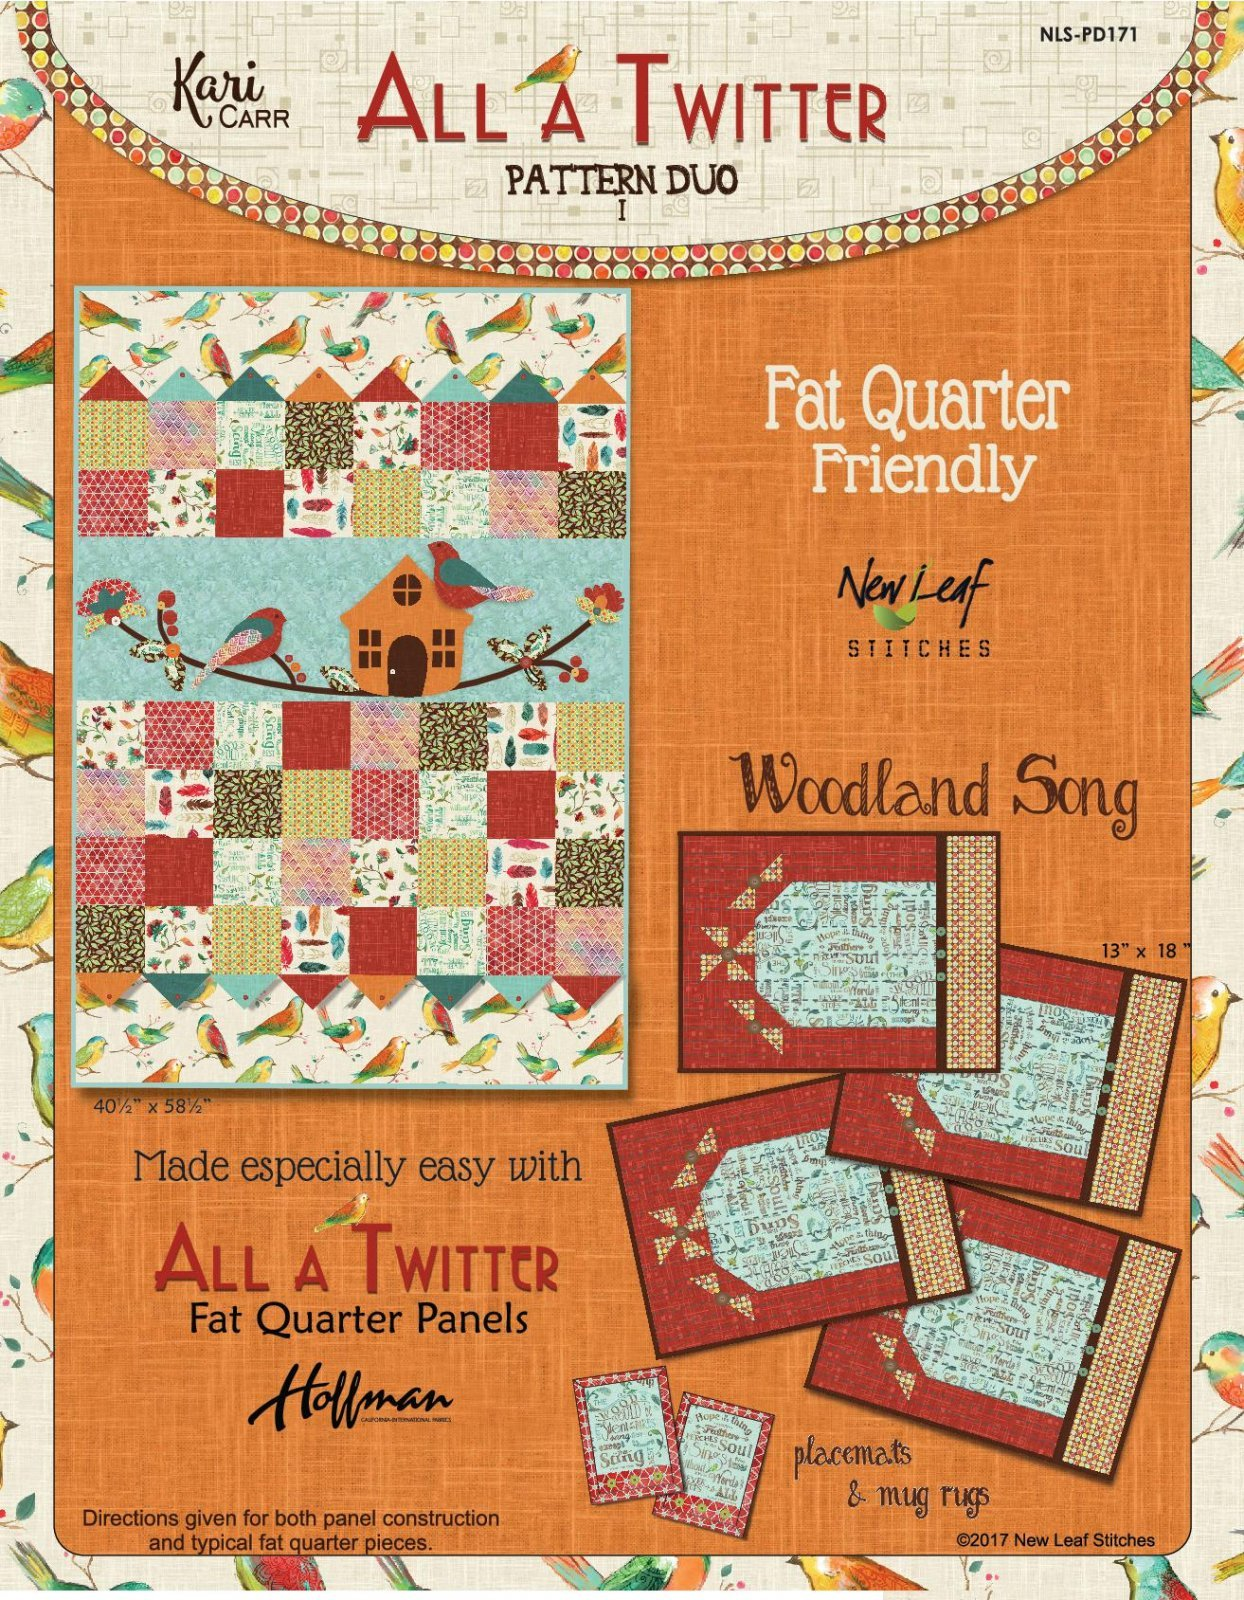 All A Twitter Pattern Duo 1 PD171